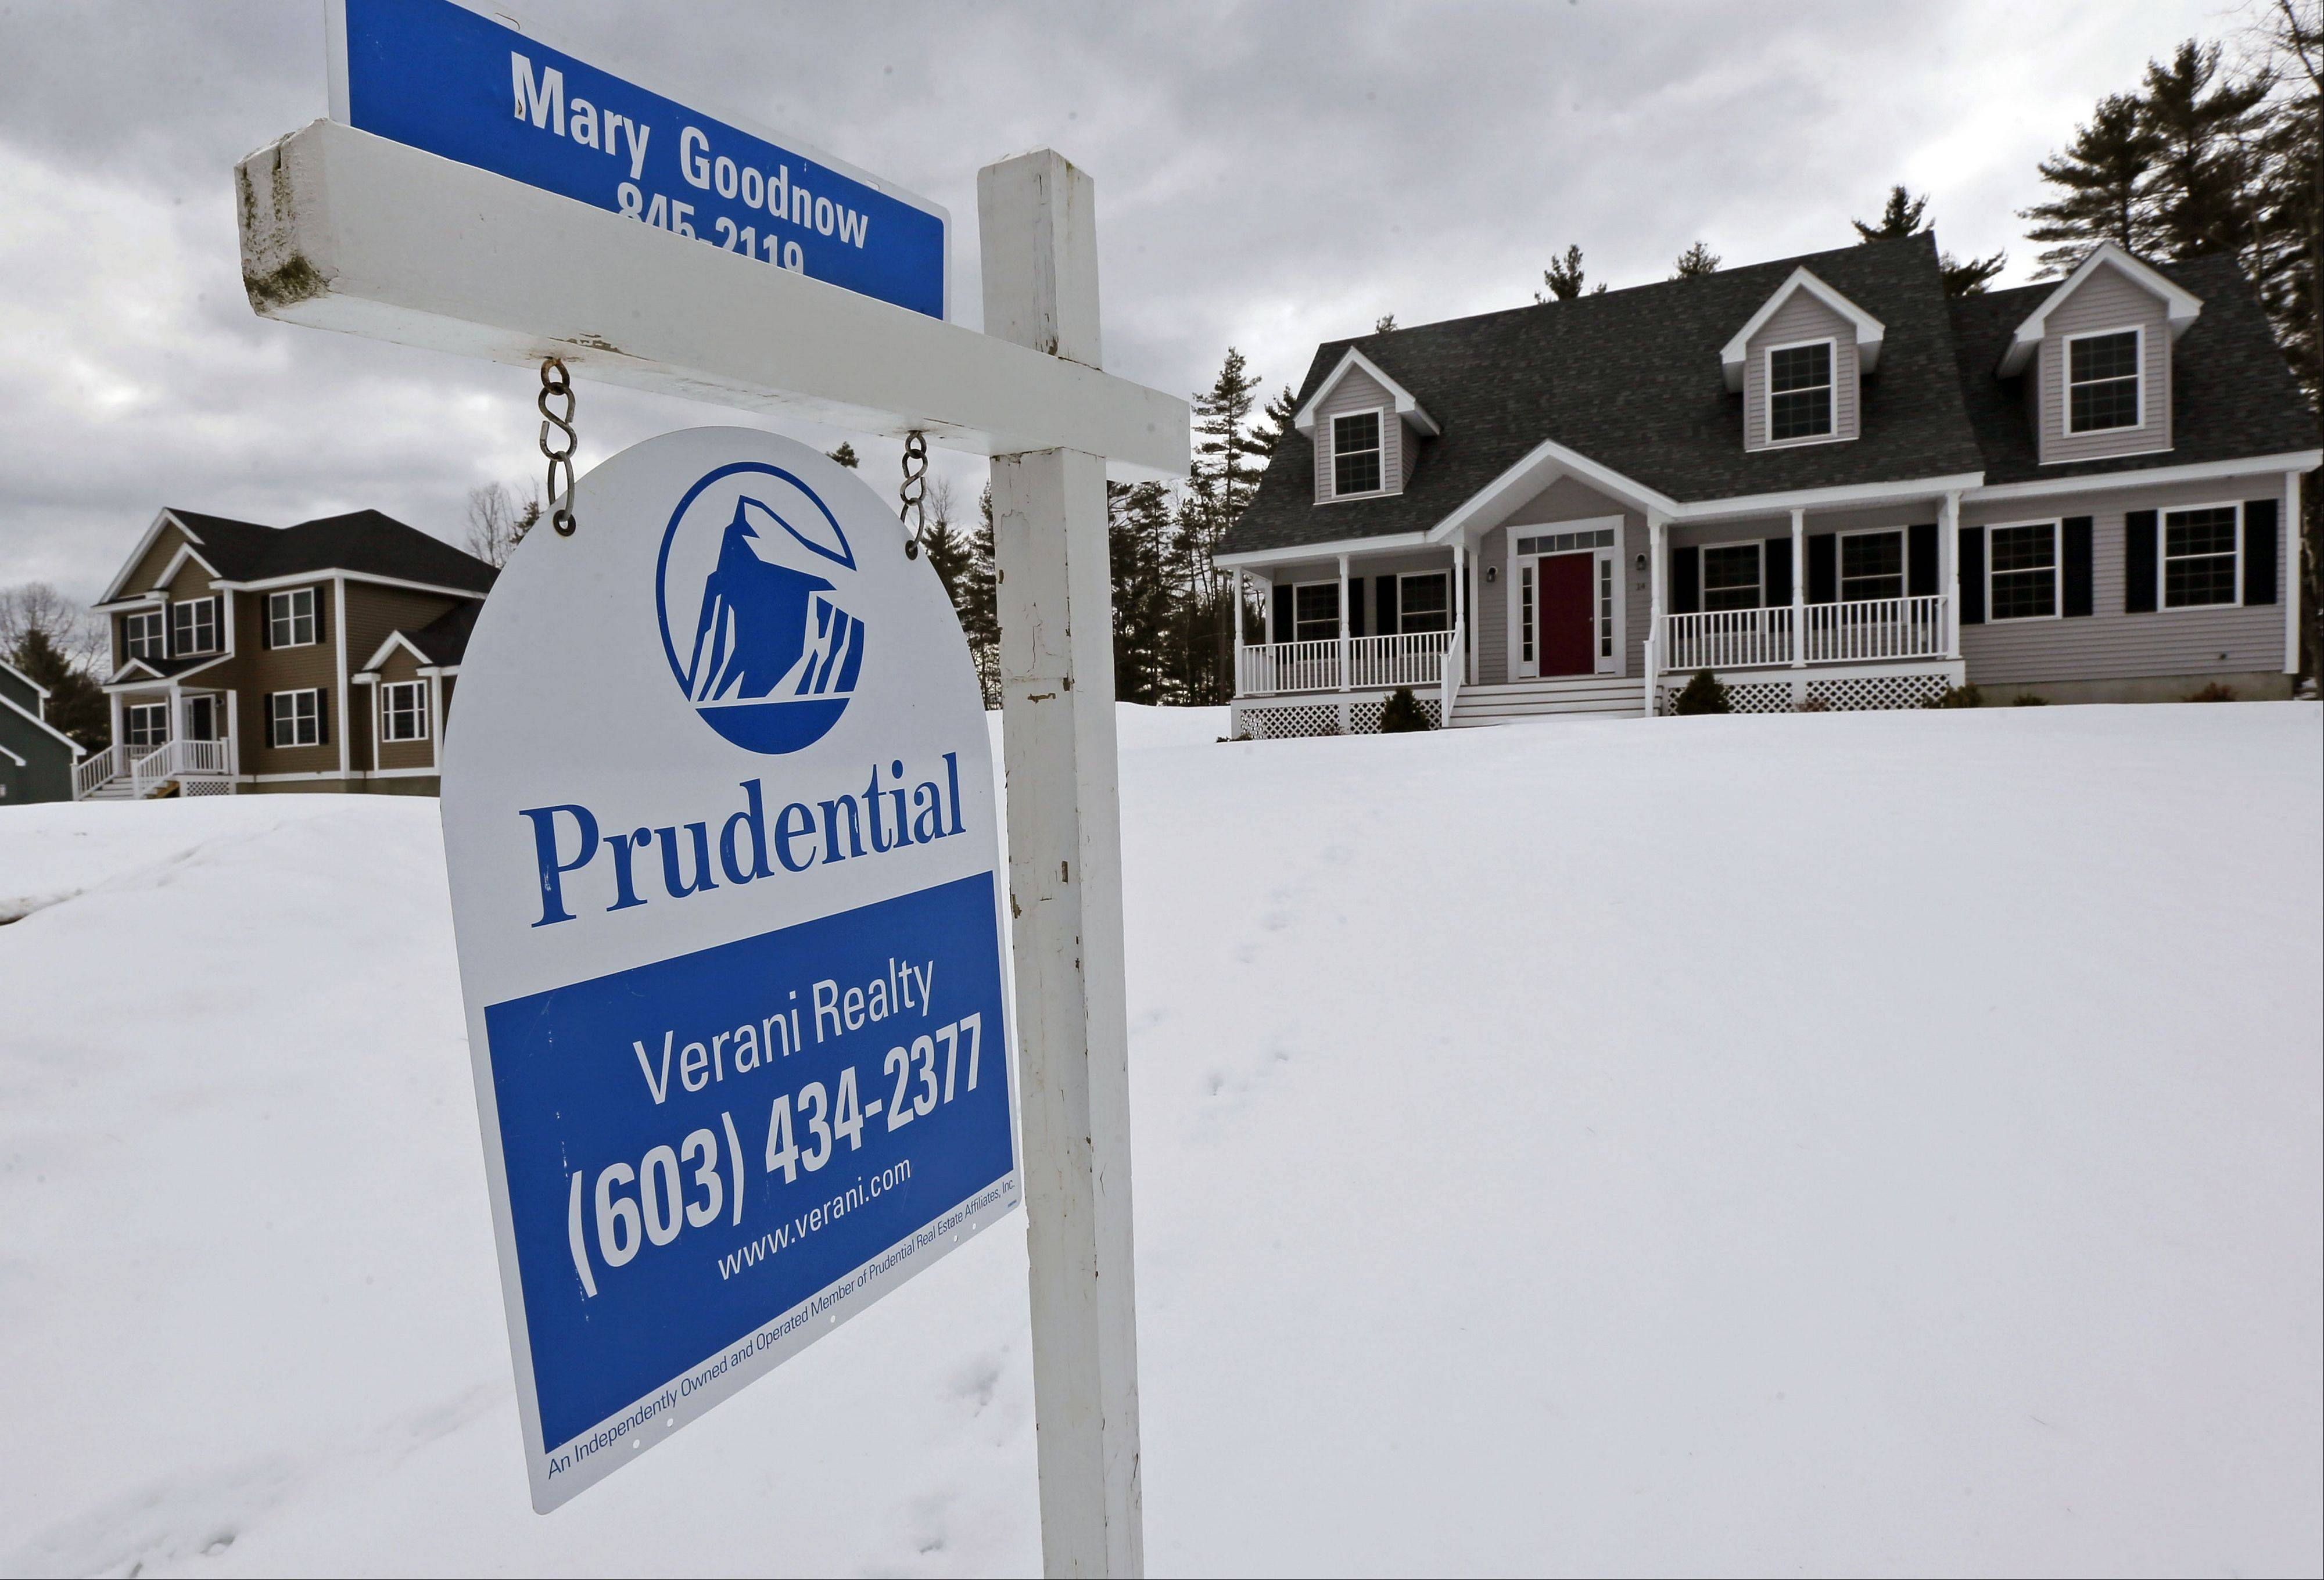 U.S. home prices rose 9.3 percent in February compared with a year ago, the most in nearly seven years. The gains were driven by a growing number of buyers who bid on a limited supply of homes. The Standard & Poor's/Case-Shiller 20-city home price index increased from an 8.1 percent year-over-year gain in January. And annual prices rose in February in all 20 cities for the second month in a row.